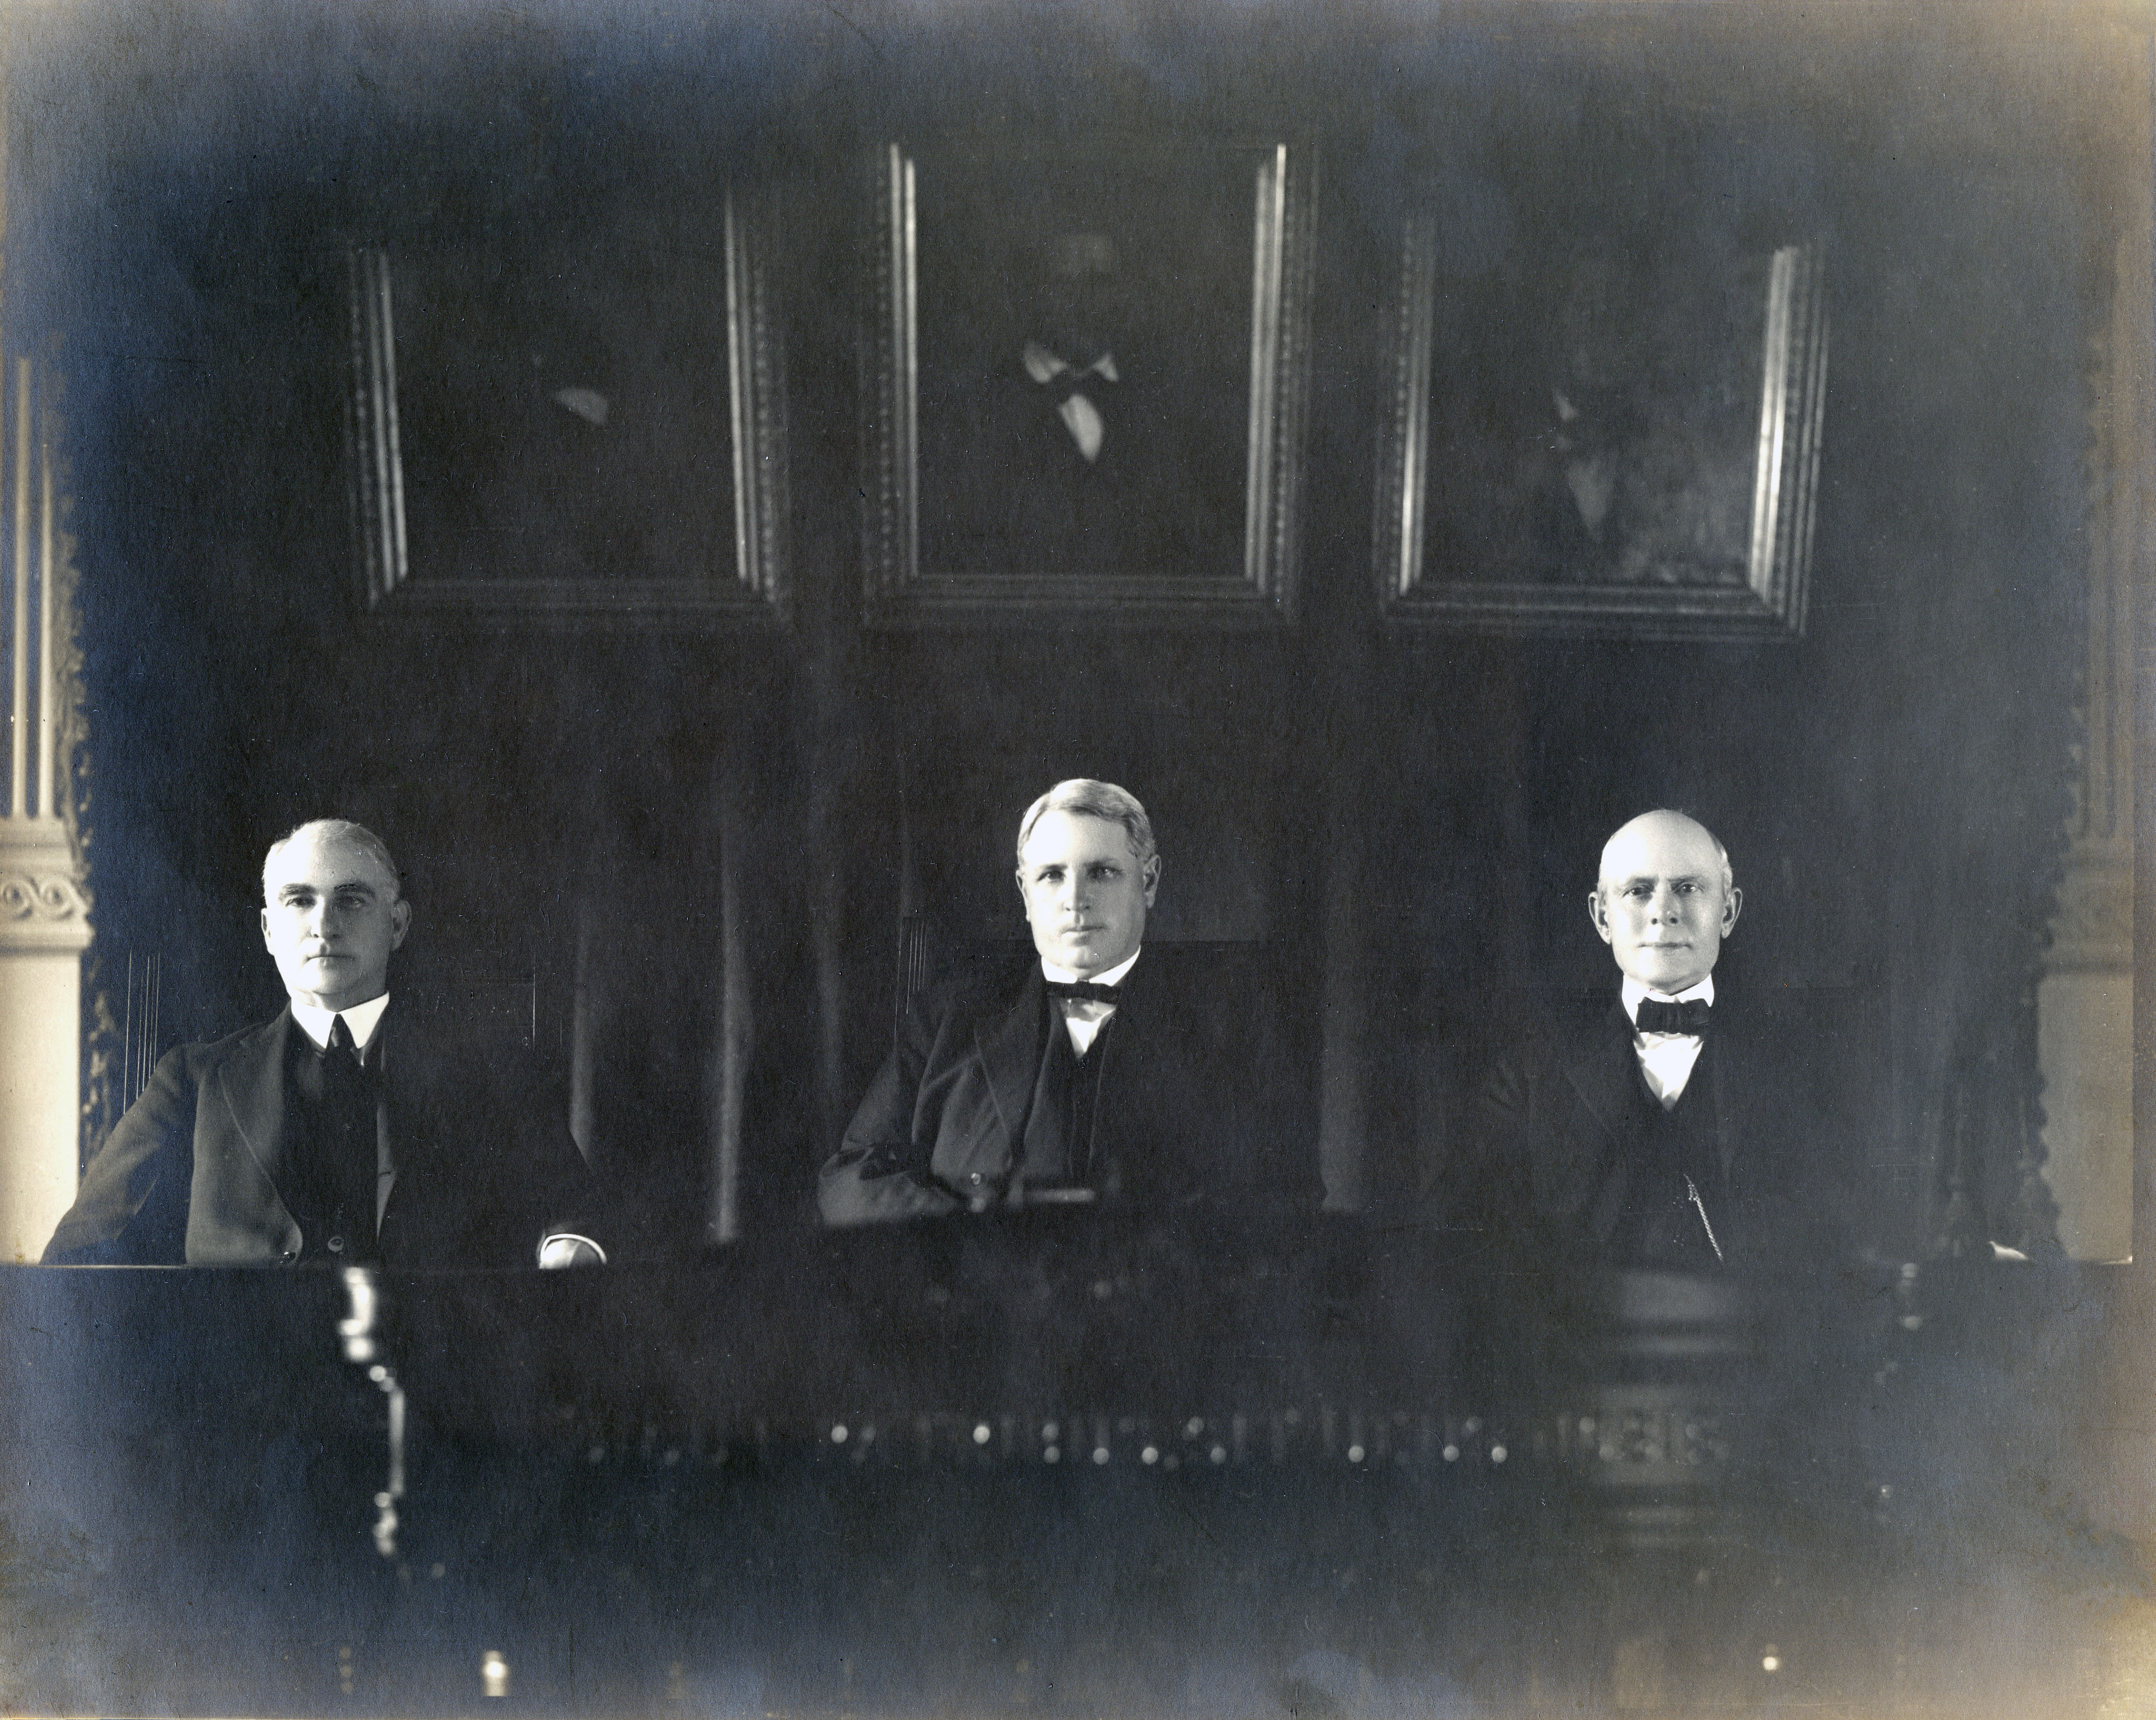 Left to right: Justice Thomas Greenwood, Chief Justice C. M. Cureton, Justice William Pierson, c. 1923-1934. Photo: Texas Supreme Court Archives.